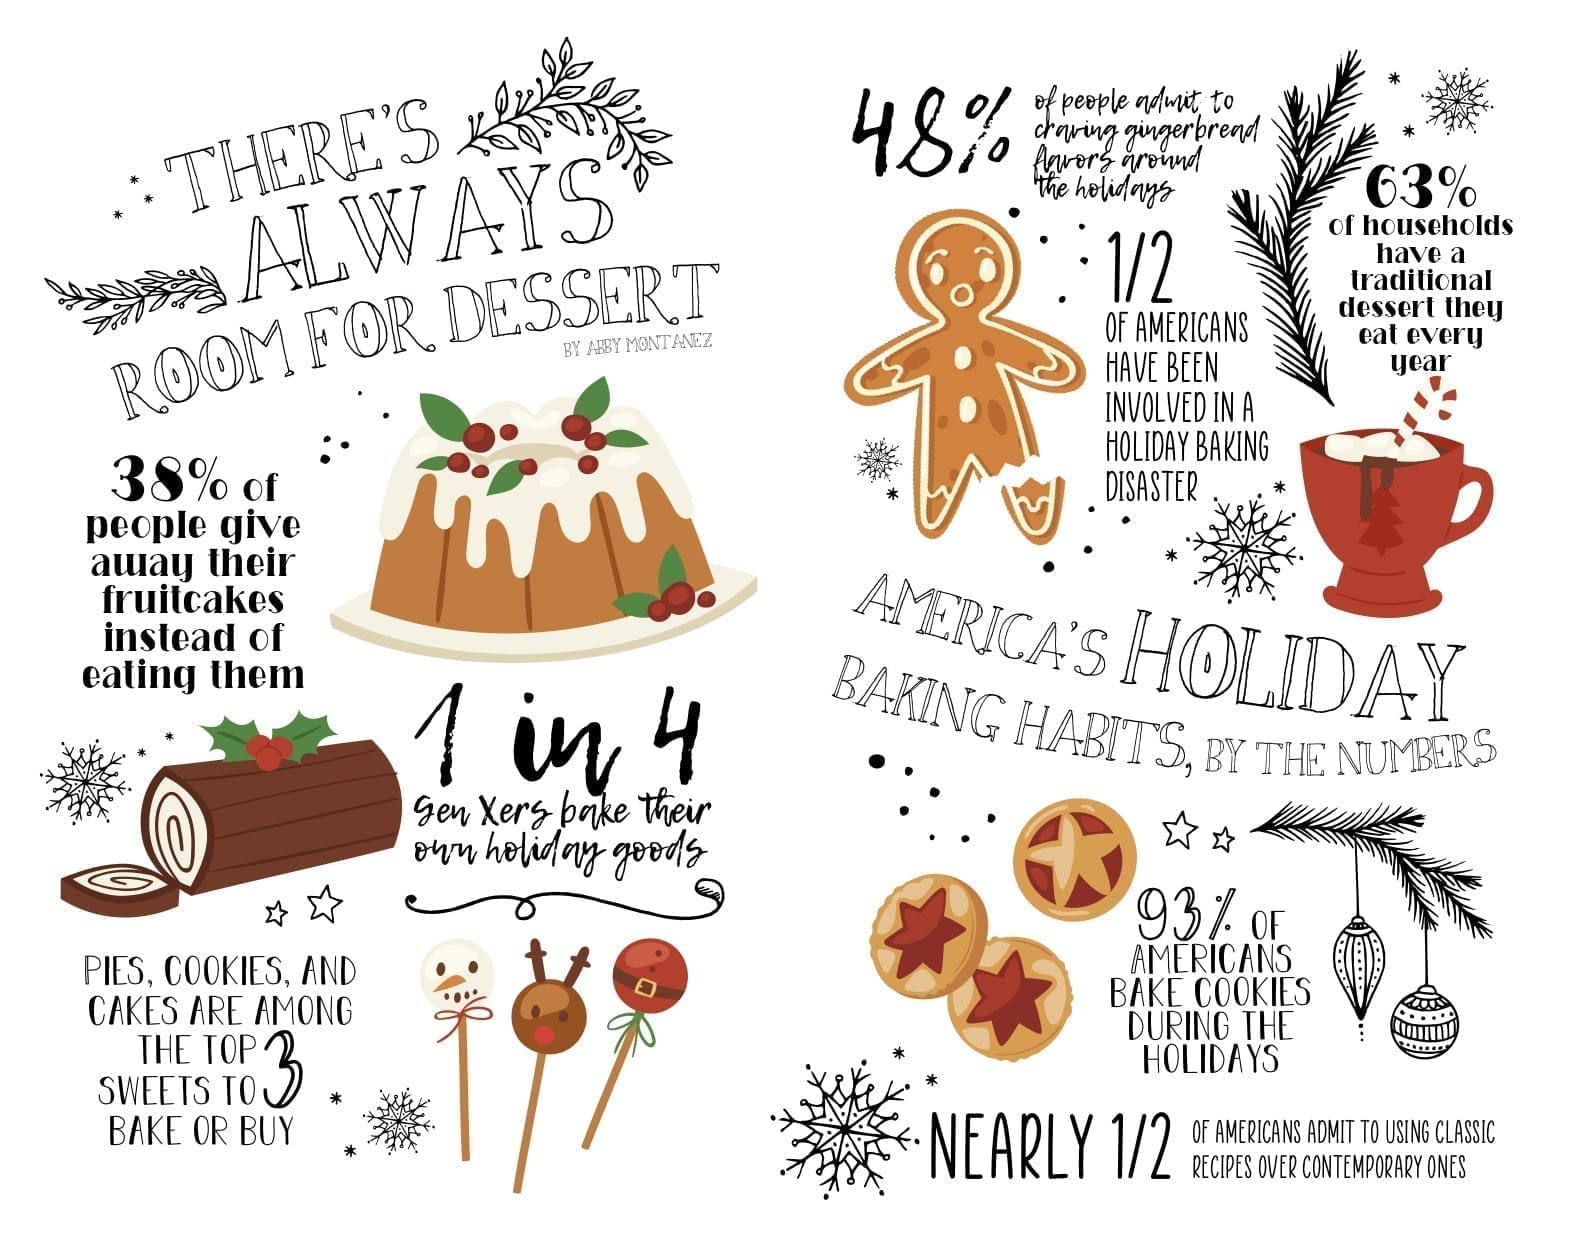 christmas holiday baking habits in america by the numbers